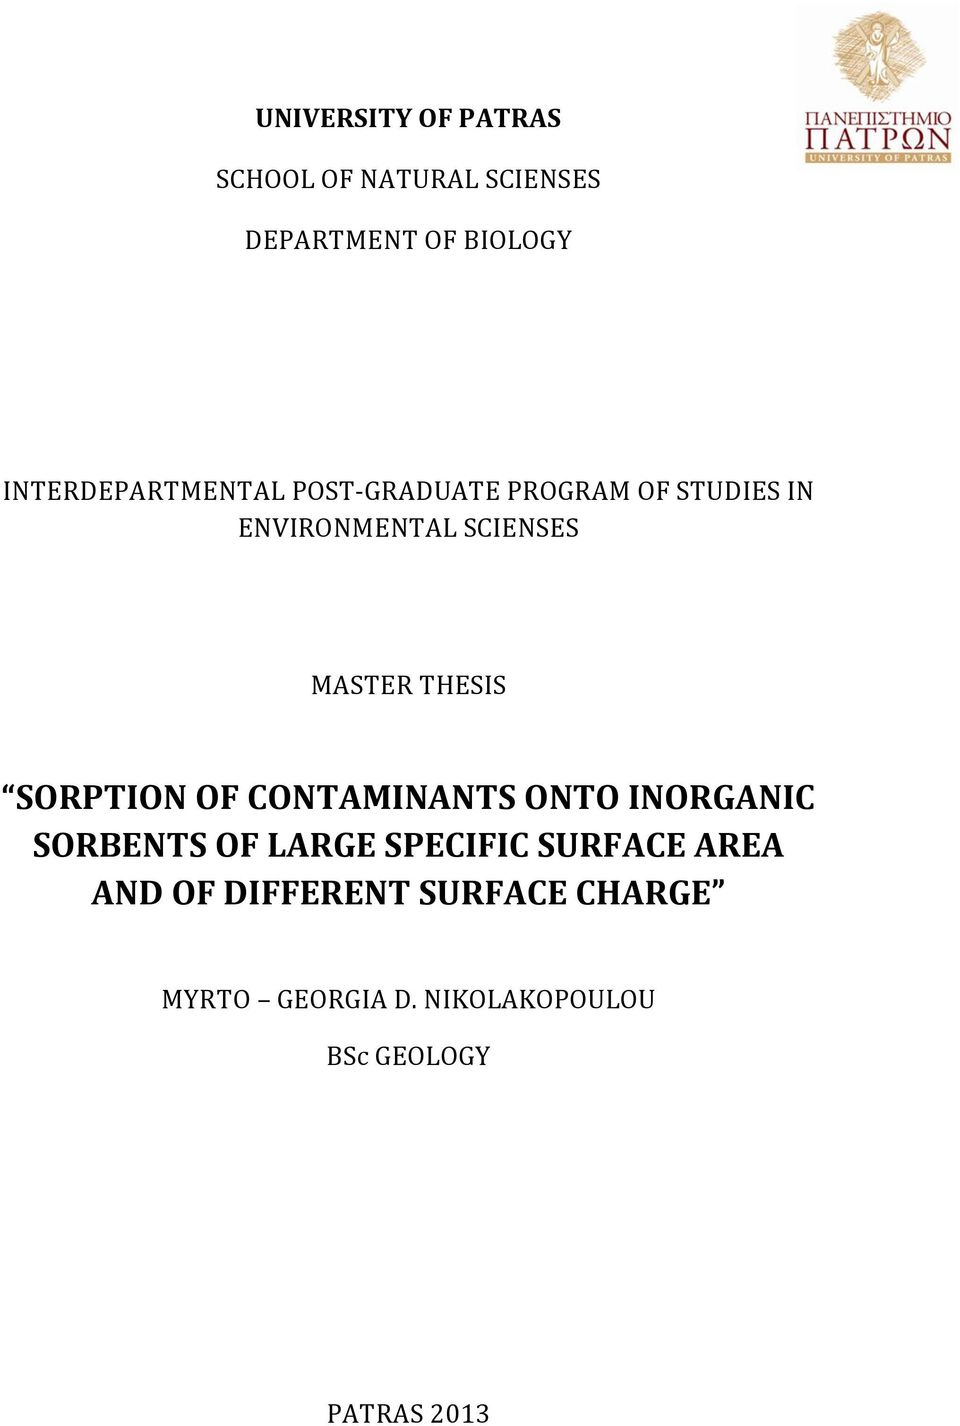 MASTER THESIS SORPTION OF CONTAMINANTS ONTO INORGANIC SORBENTS OF LARGE SPECIFIC